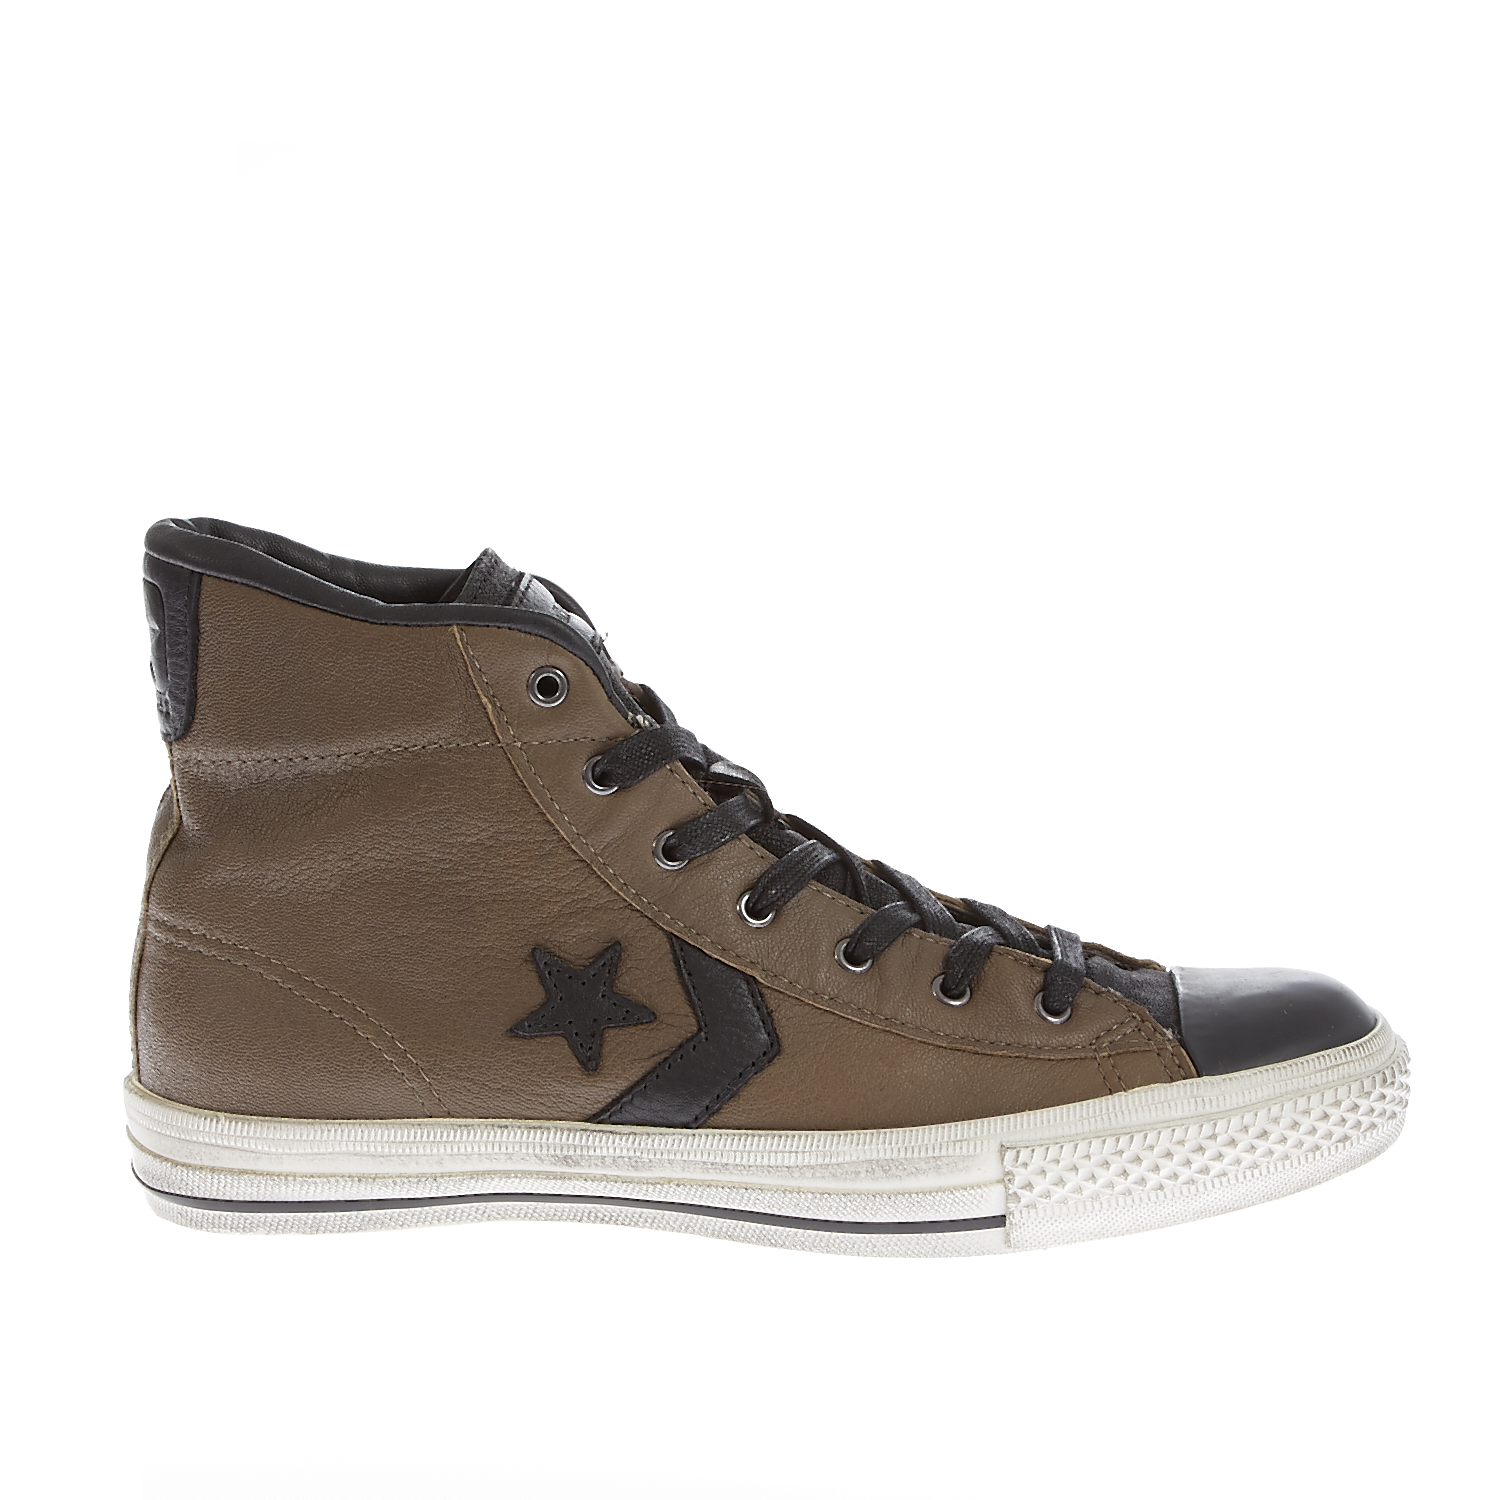 CONVERSE – Unisex μποτάκια HTG MID JV Star Player καφέ